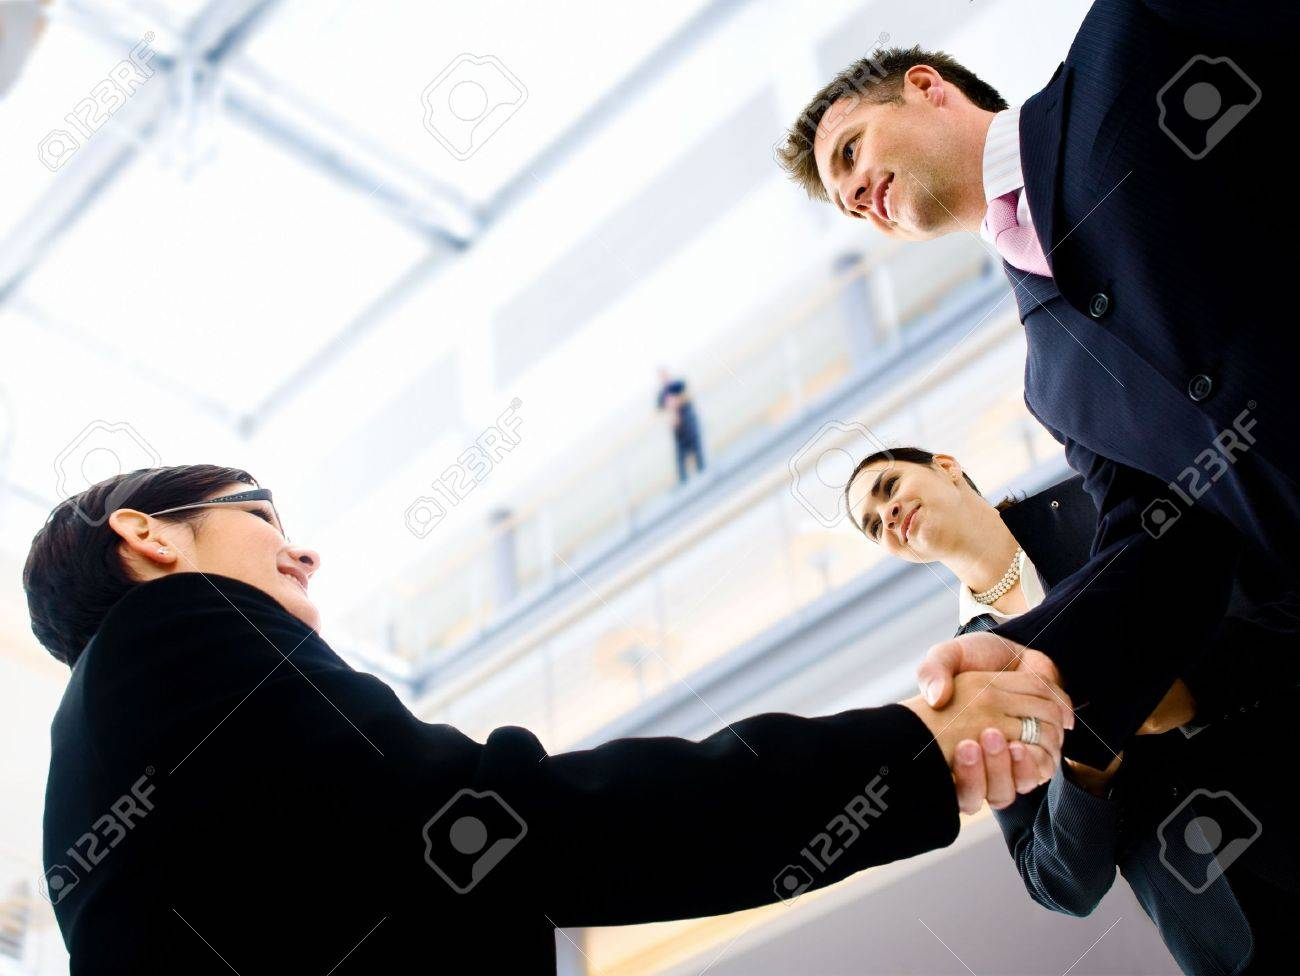 Business people shaking hands in the entrance hall of the office building. Selective focus is placed on the hands. Stock Photo - 1809592